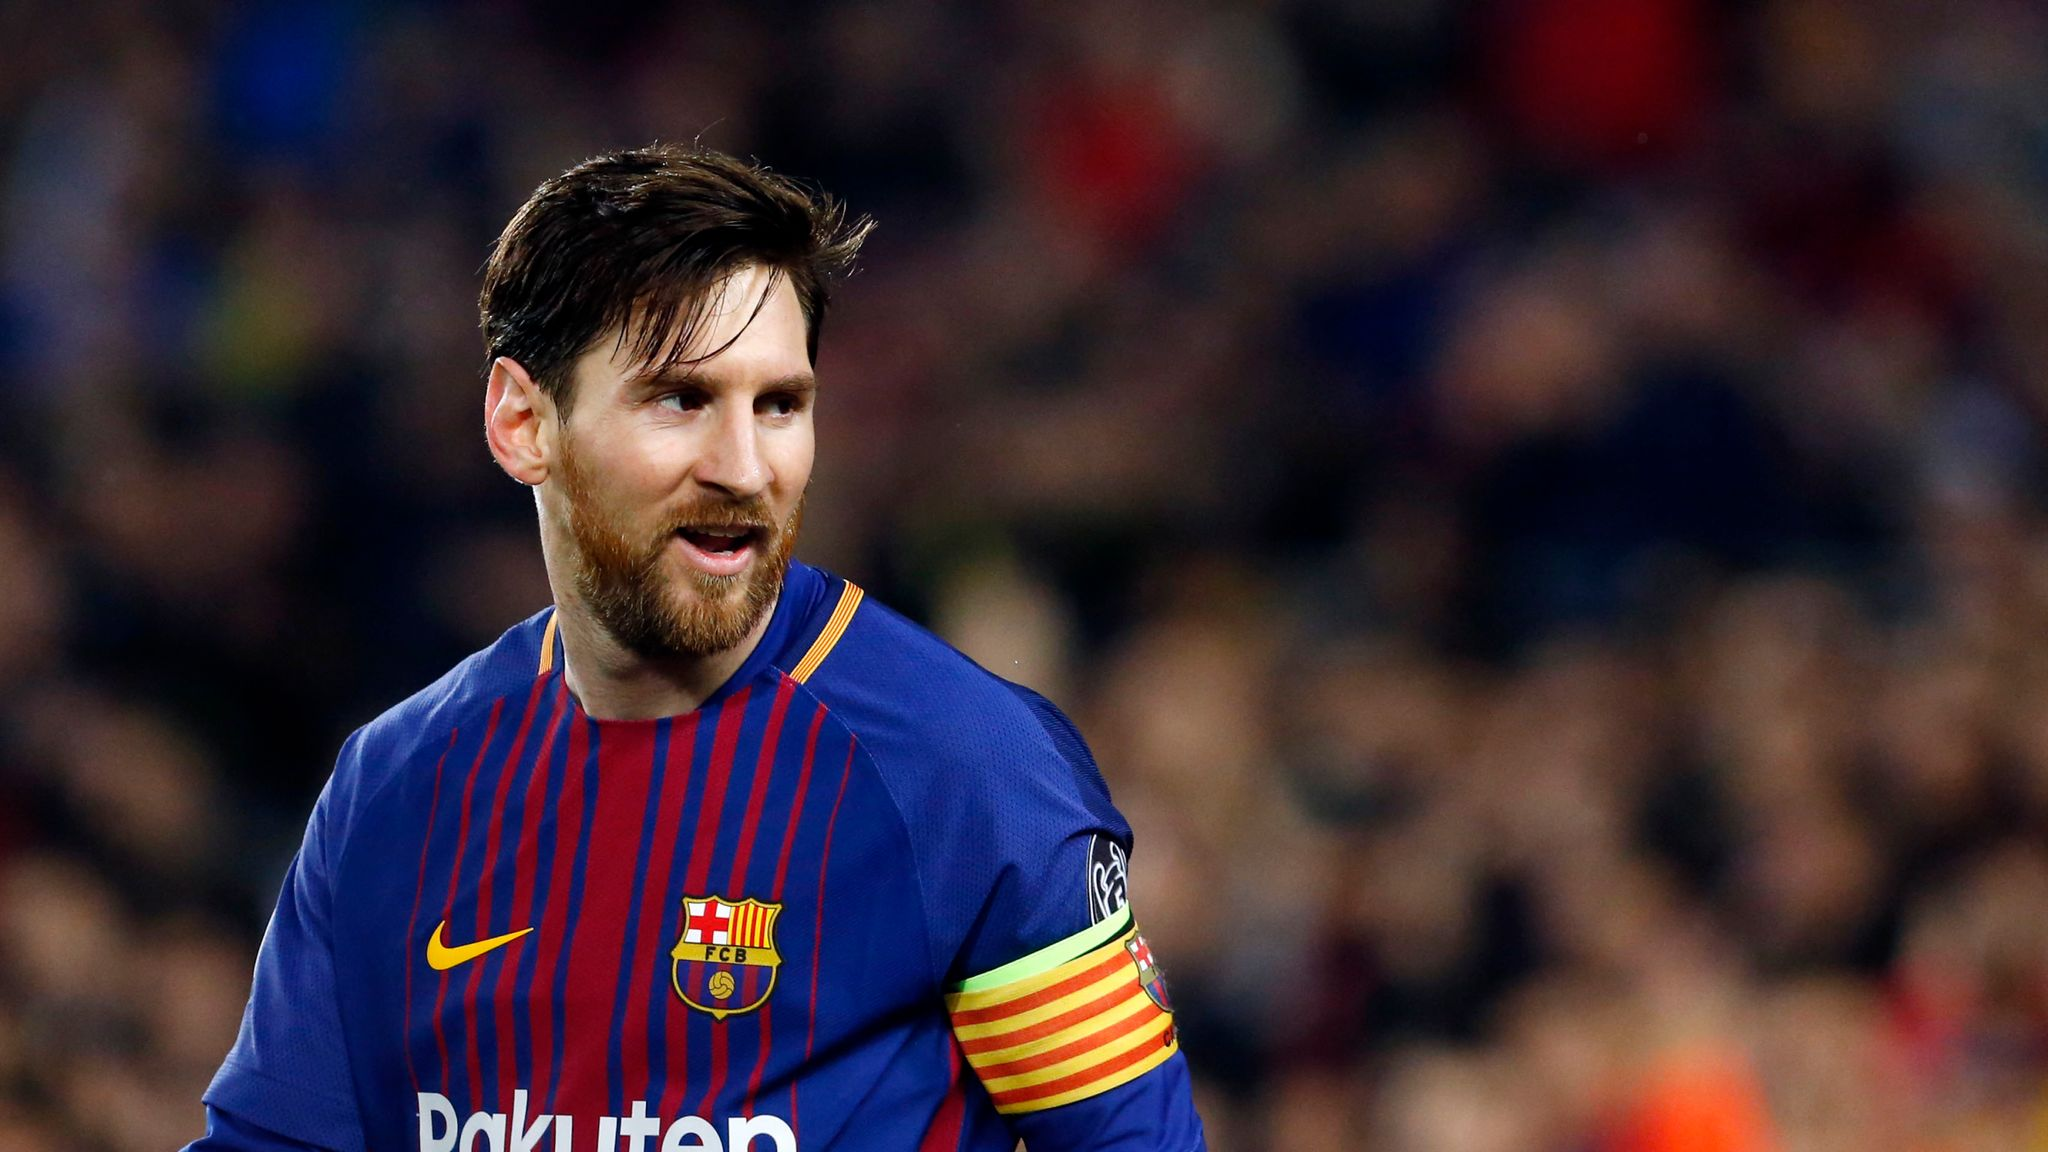 bdf9bb6003a Lionel Messi named Barcelona captain for 2018/19 season | Football ...